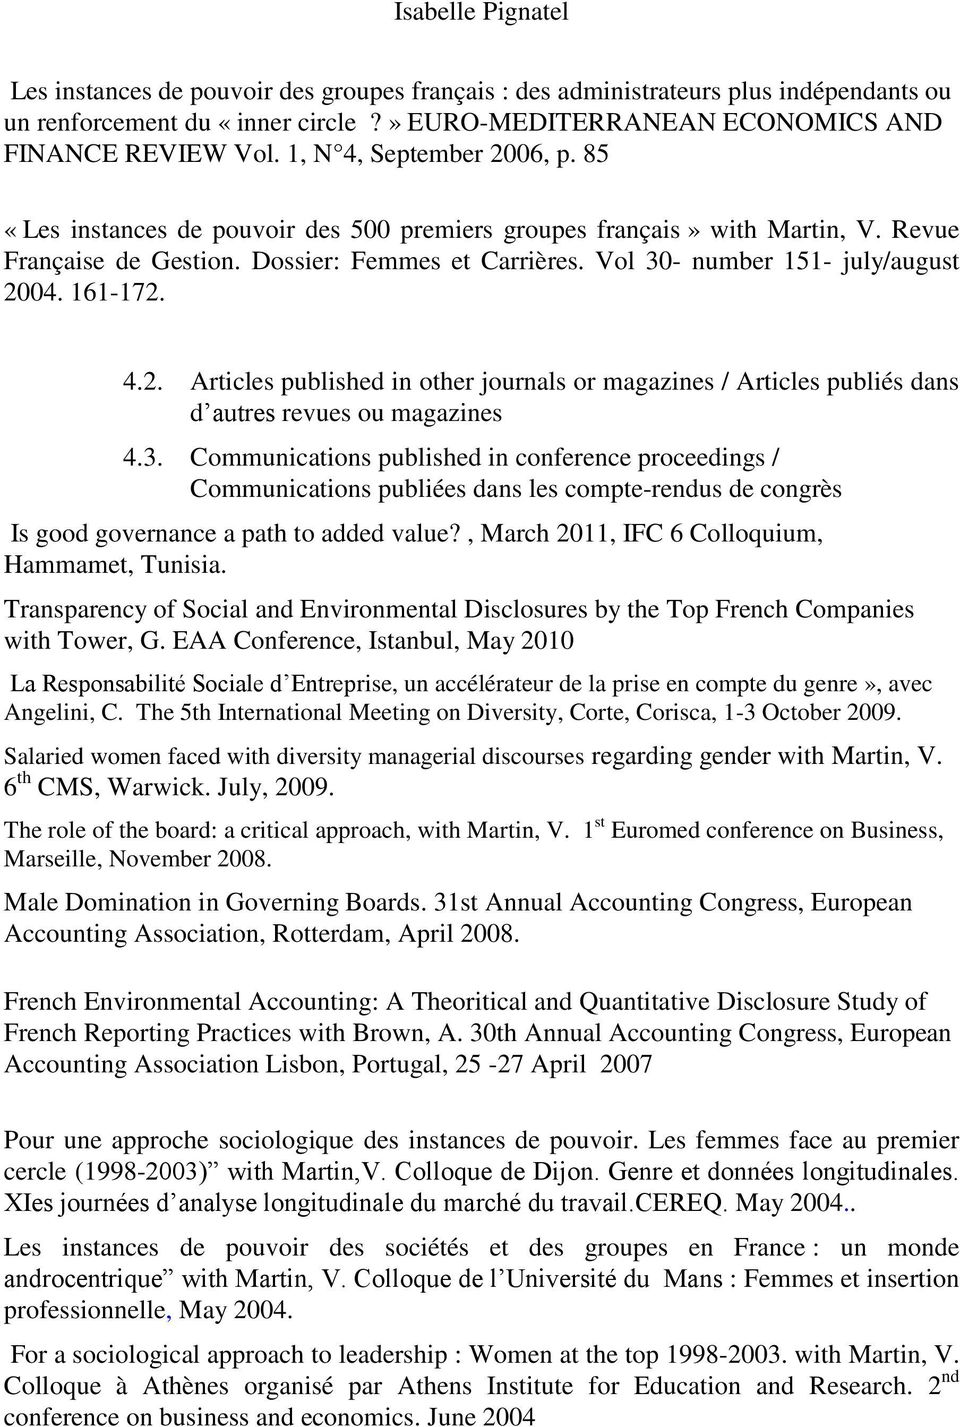 Vol 30- number 151- july/august 2004. 161-172. 4.2. Articles published in other journals or magazines / Articles publiés dans d autres revues ou magazines 4.3. Communications published in conference proceedings / Communications publiées dans les compte-rendus de congrès Is good governance a path to added value?